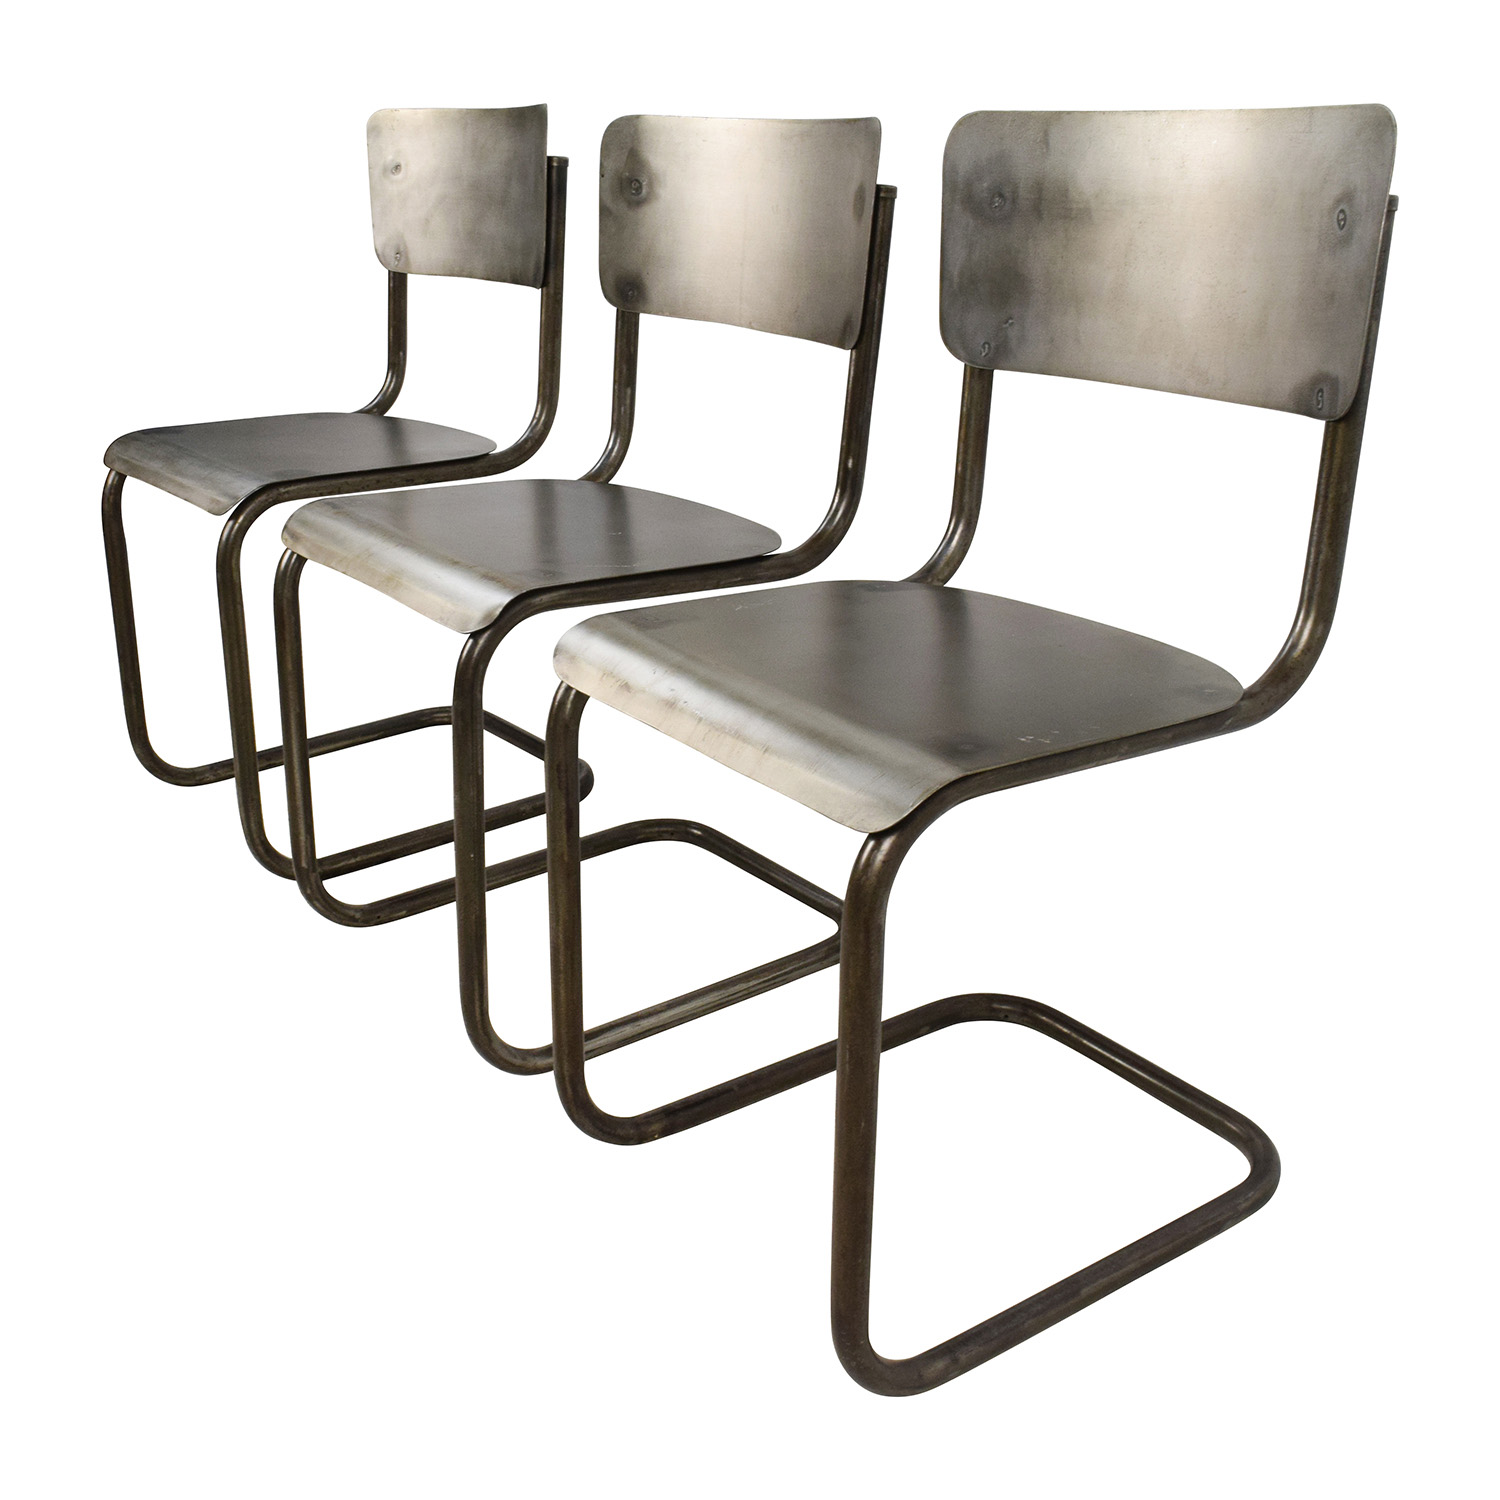 68% OFF Industrial Style Metal Chair Set Chairs